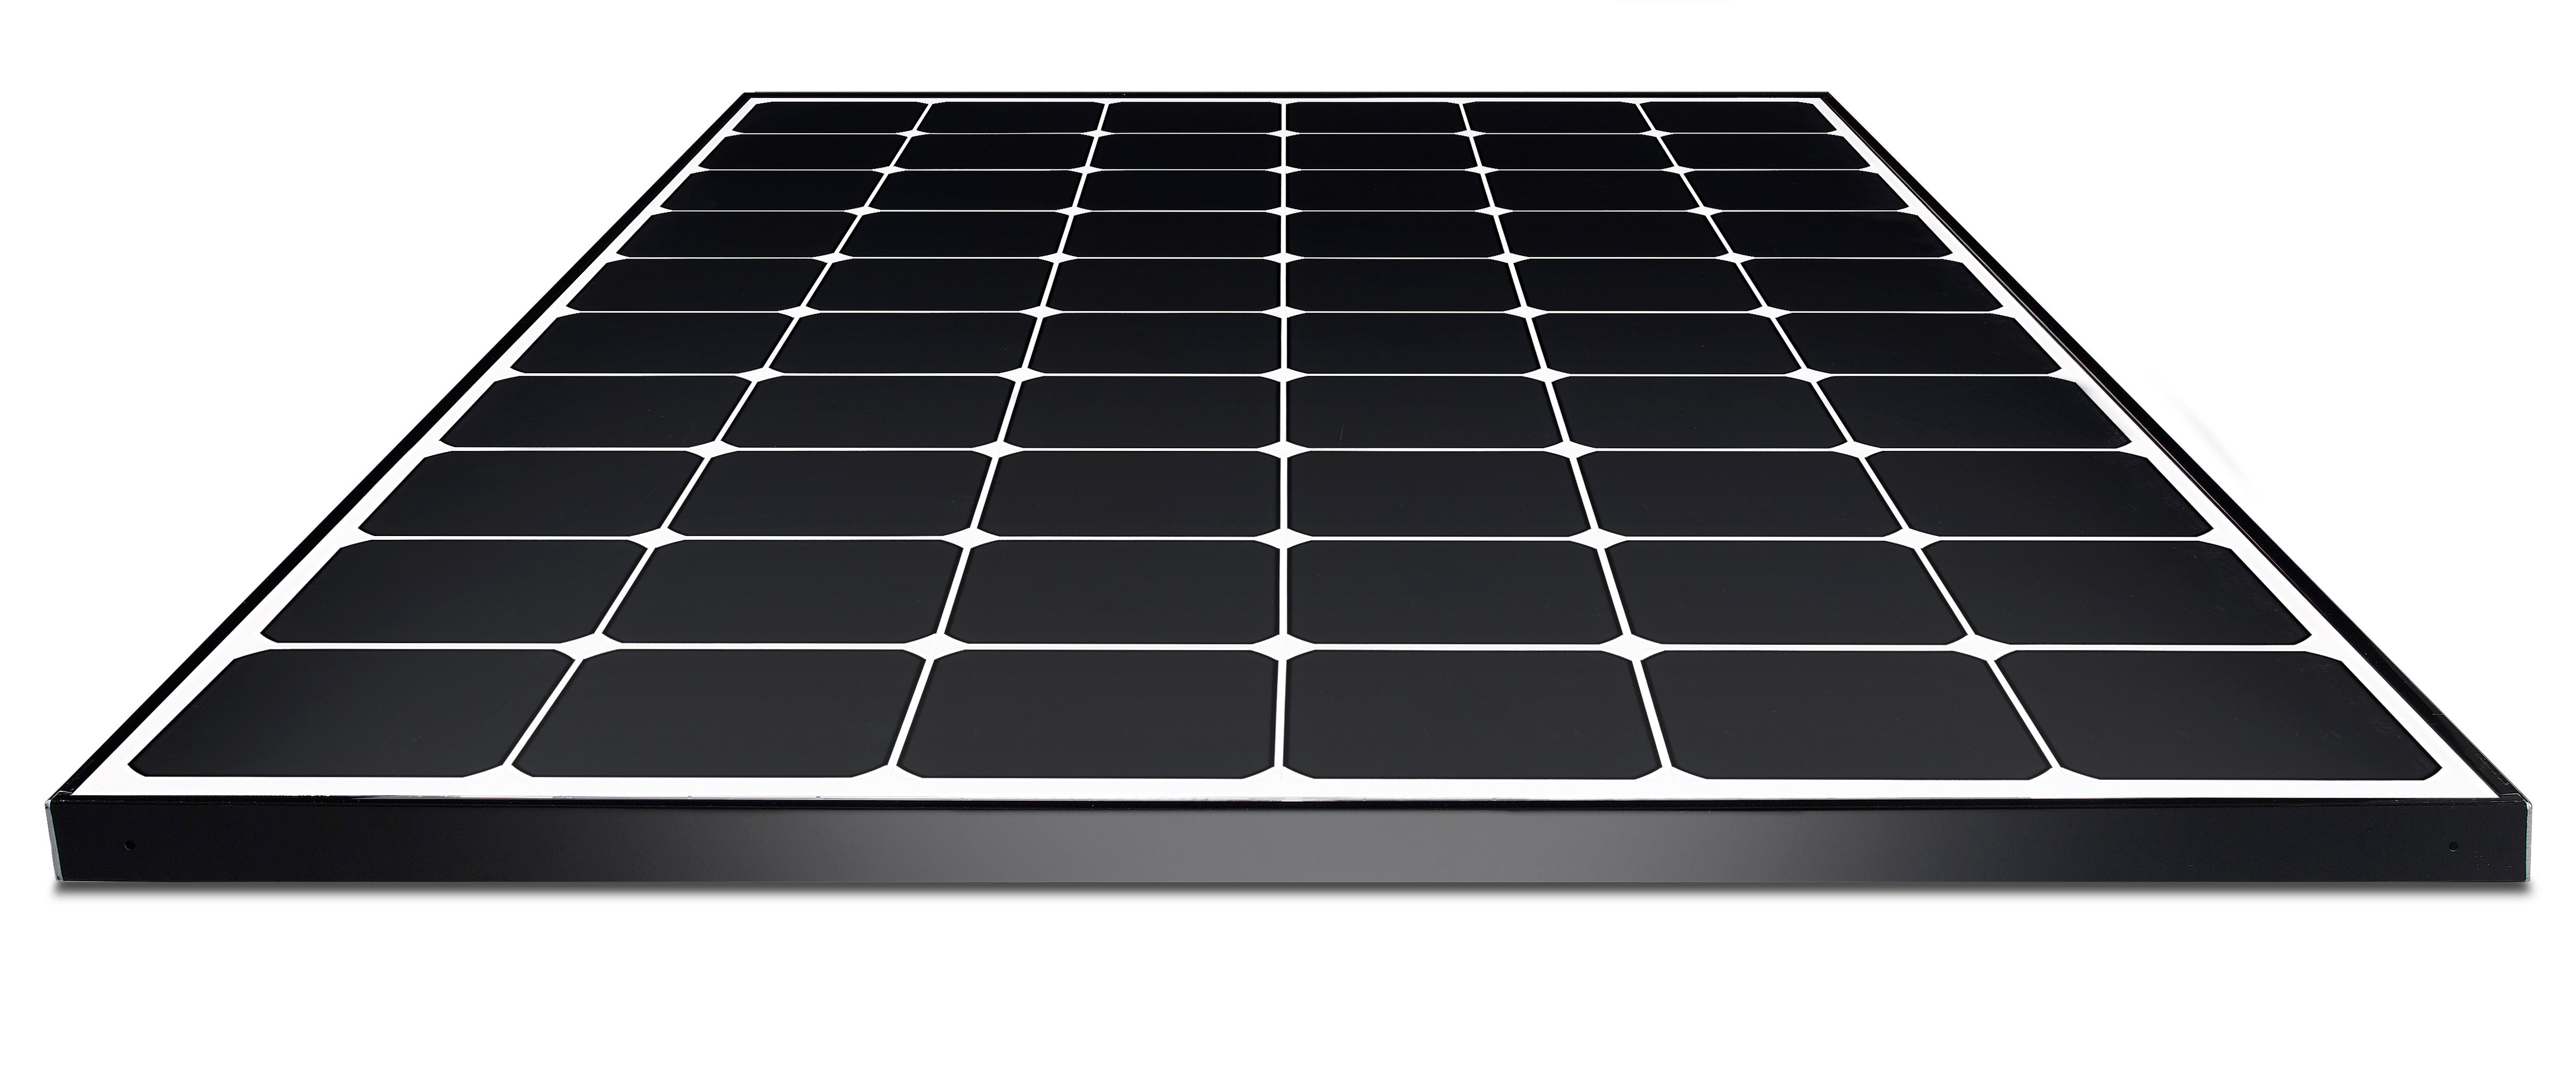 Lgs Brings New High Efficiency Residential Solar Panels To